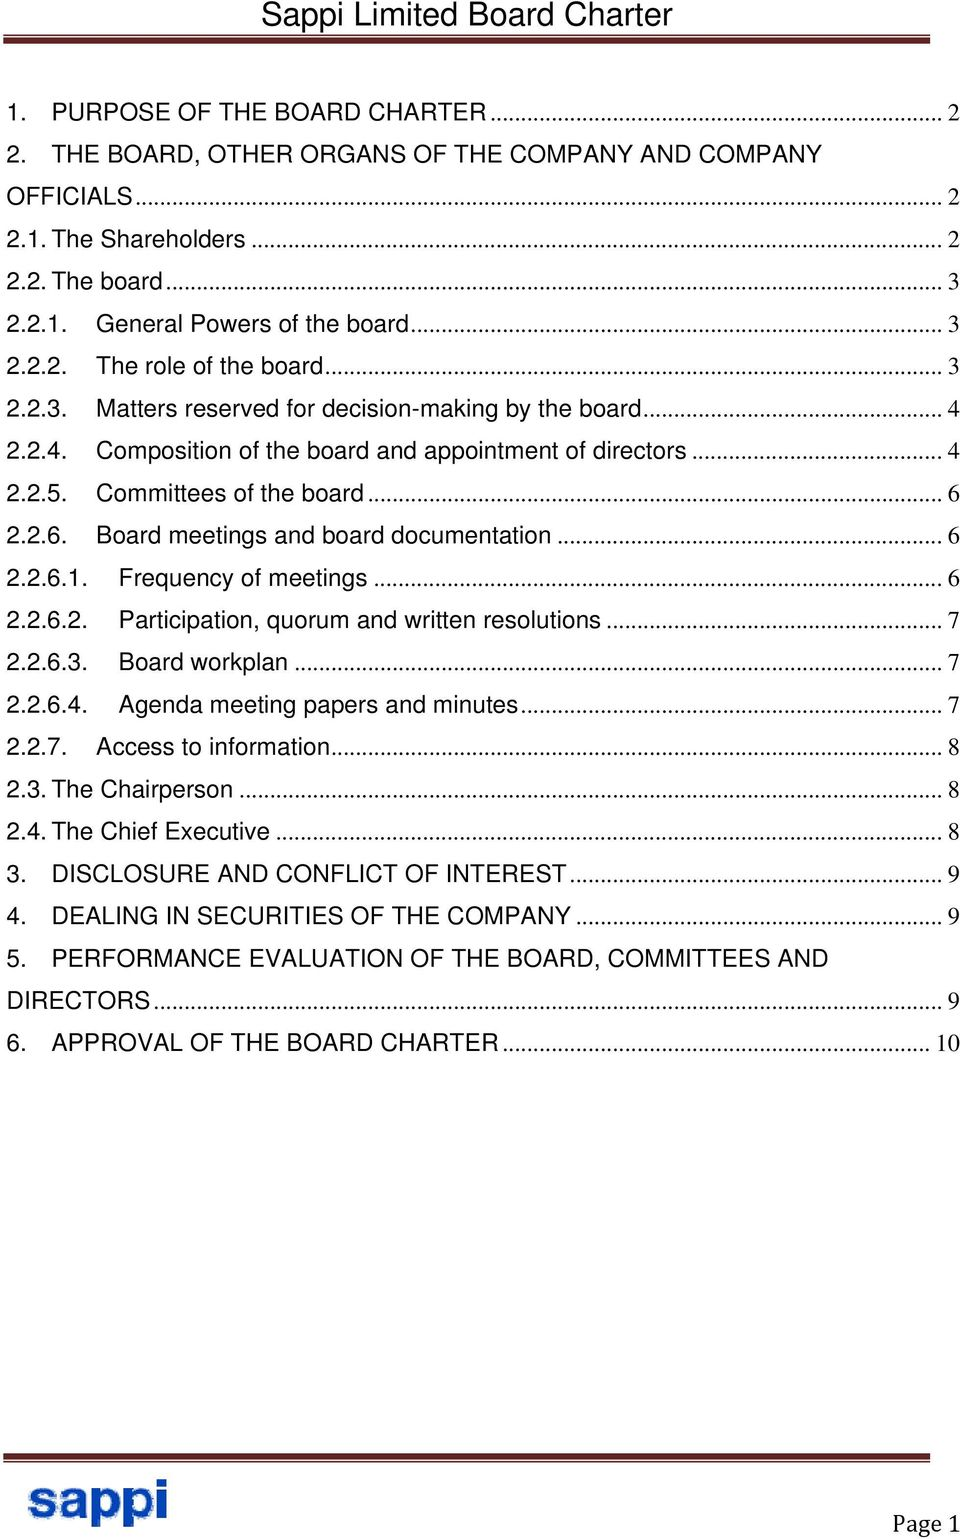 2.2.6. Board meetings and board documentation... 6 2.2.6.1. Frequency of meetings... 6 2.2.6.2. Participation, quorum and written resolutions... 7 2.2.6.3. Board workplan... 7 2.2.6.4.